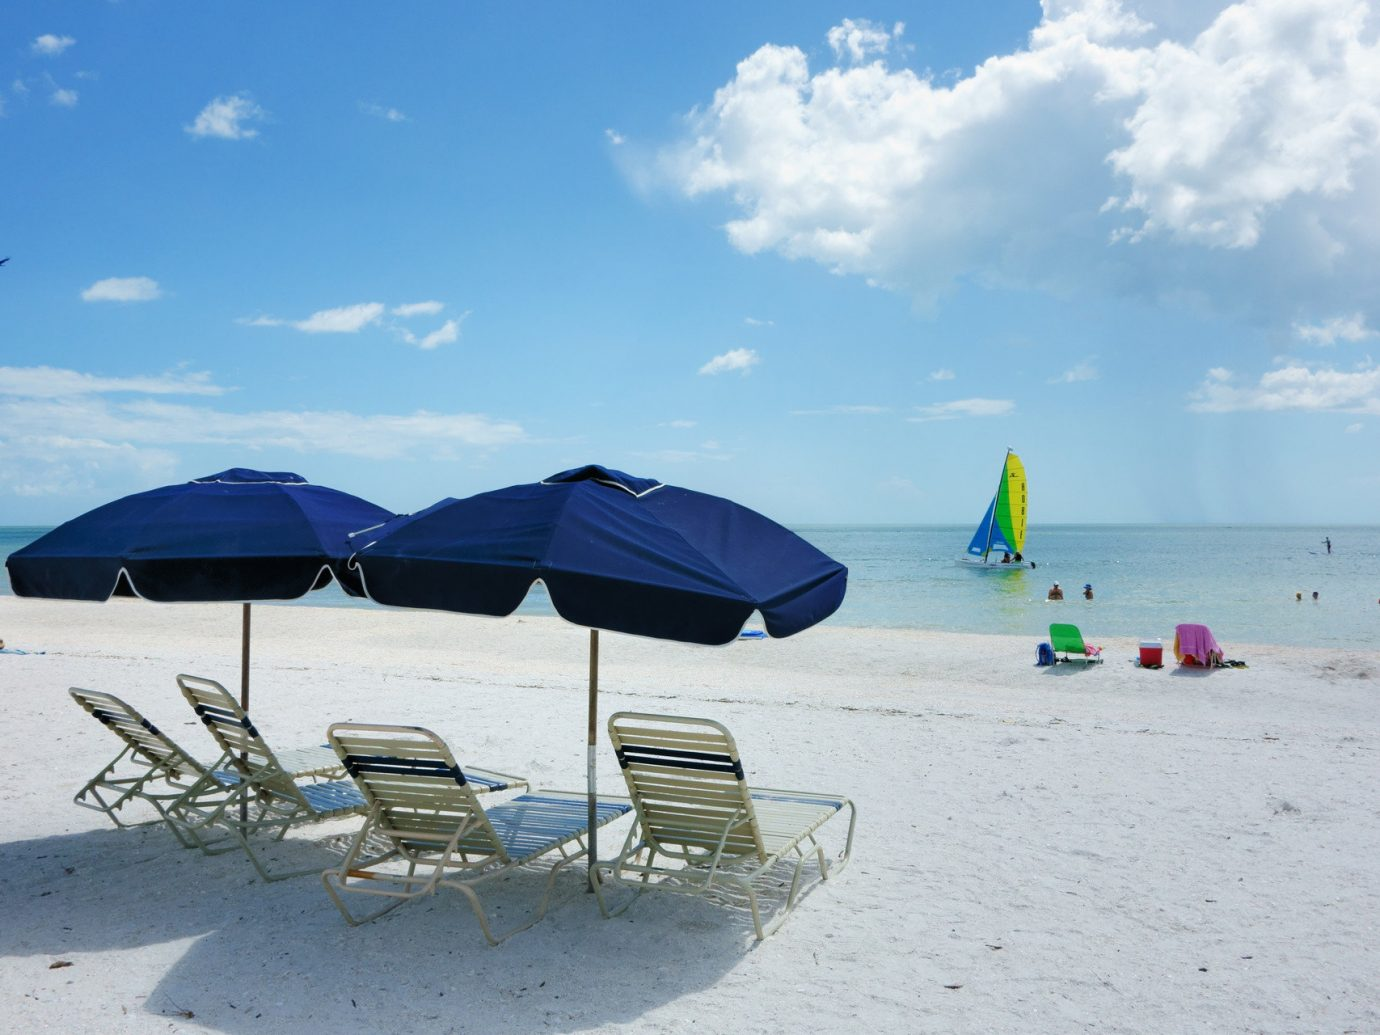 Trip Ideas sky outdoor Beach umbrella body of water Sea Ocean Nature shore vacation Coast bay sand wind day sandy several